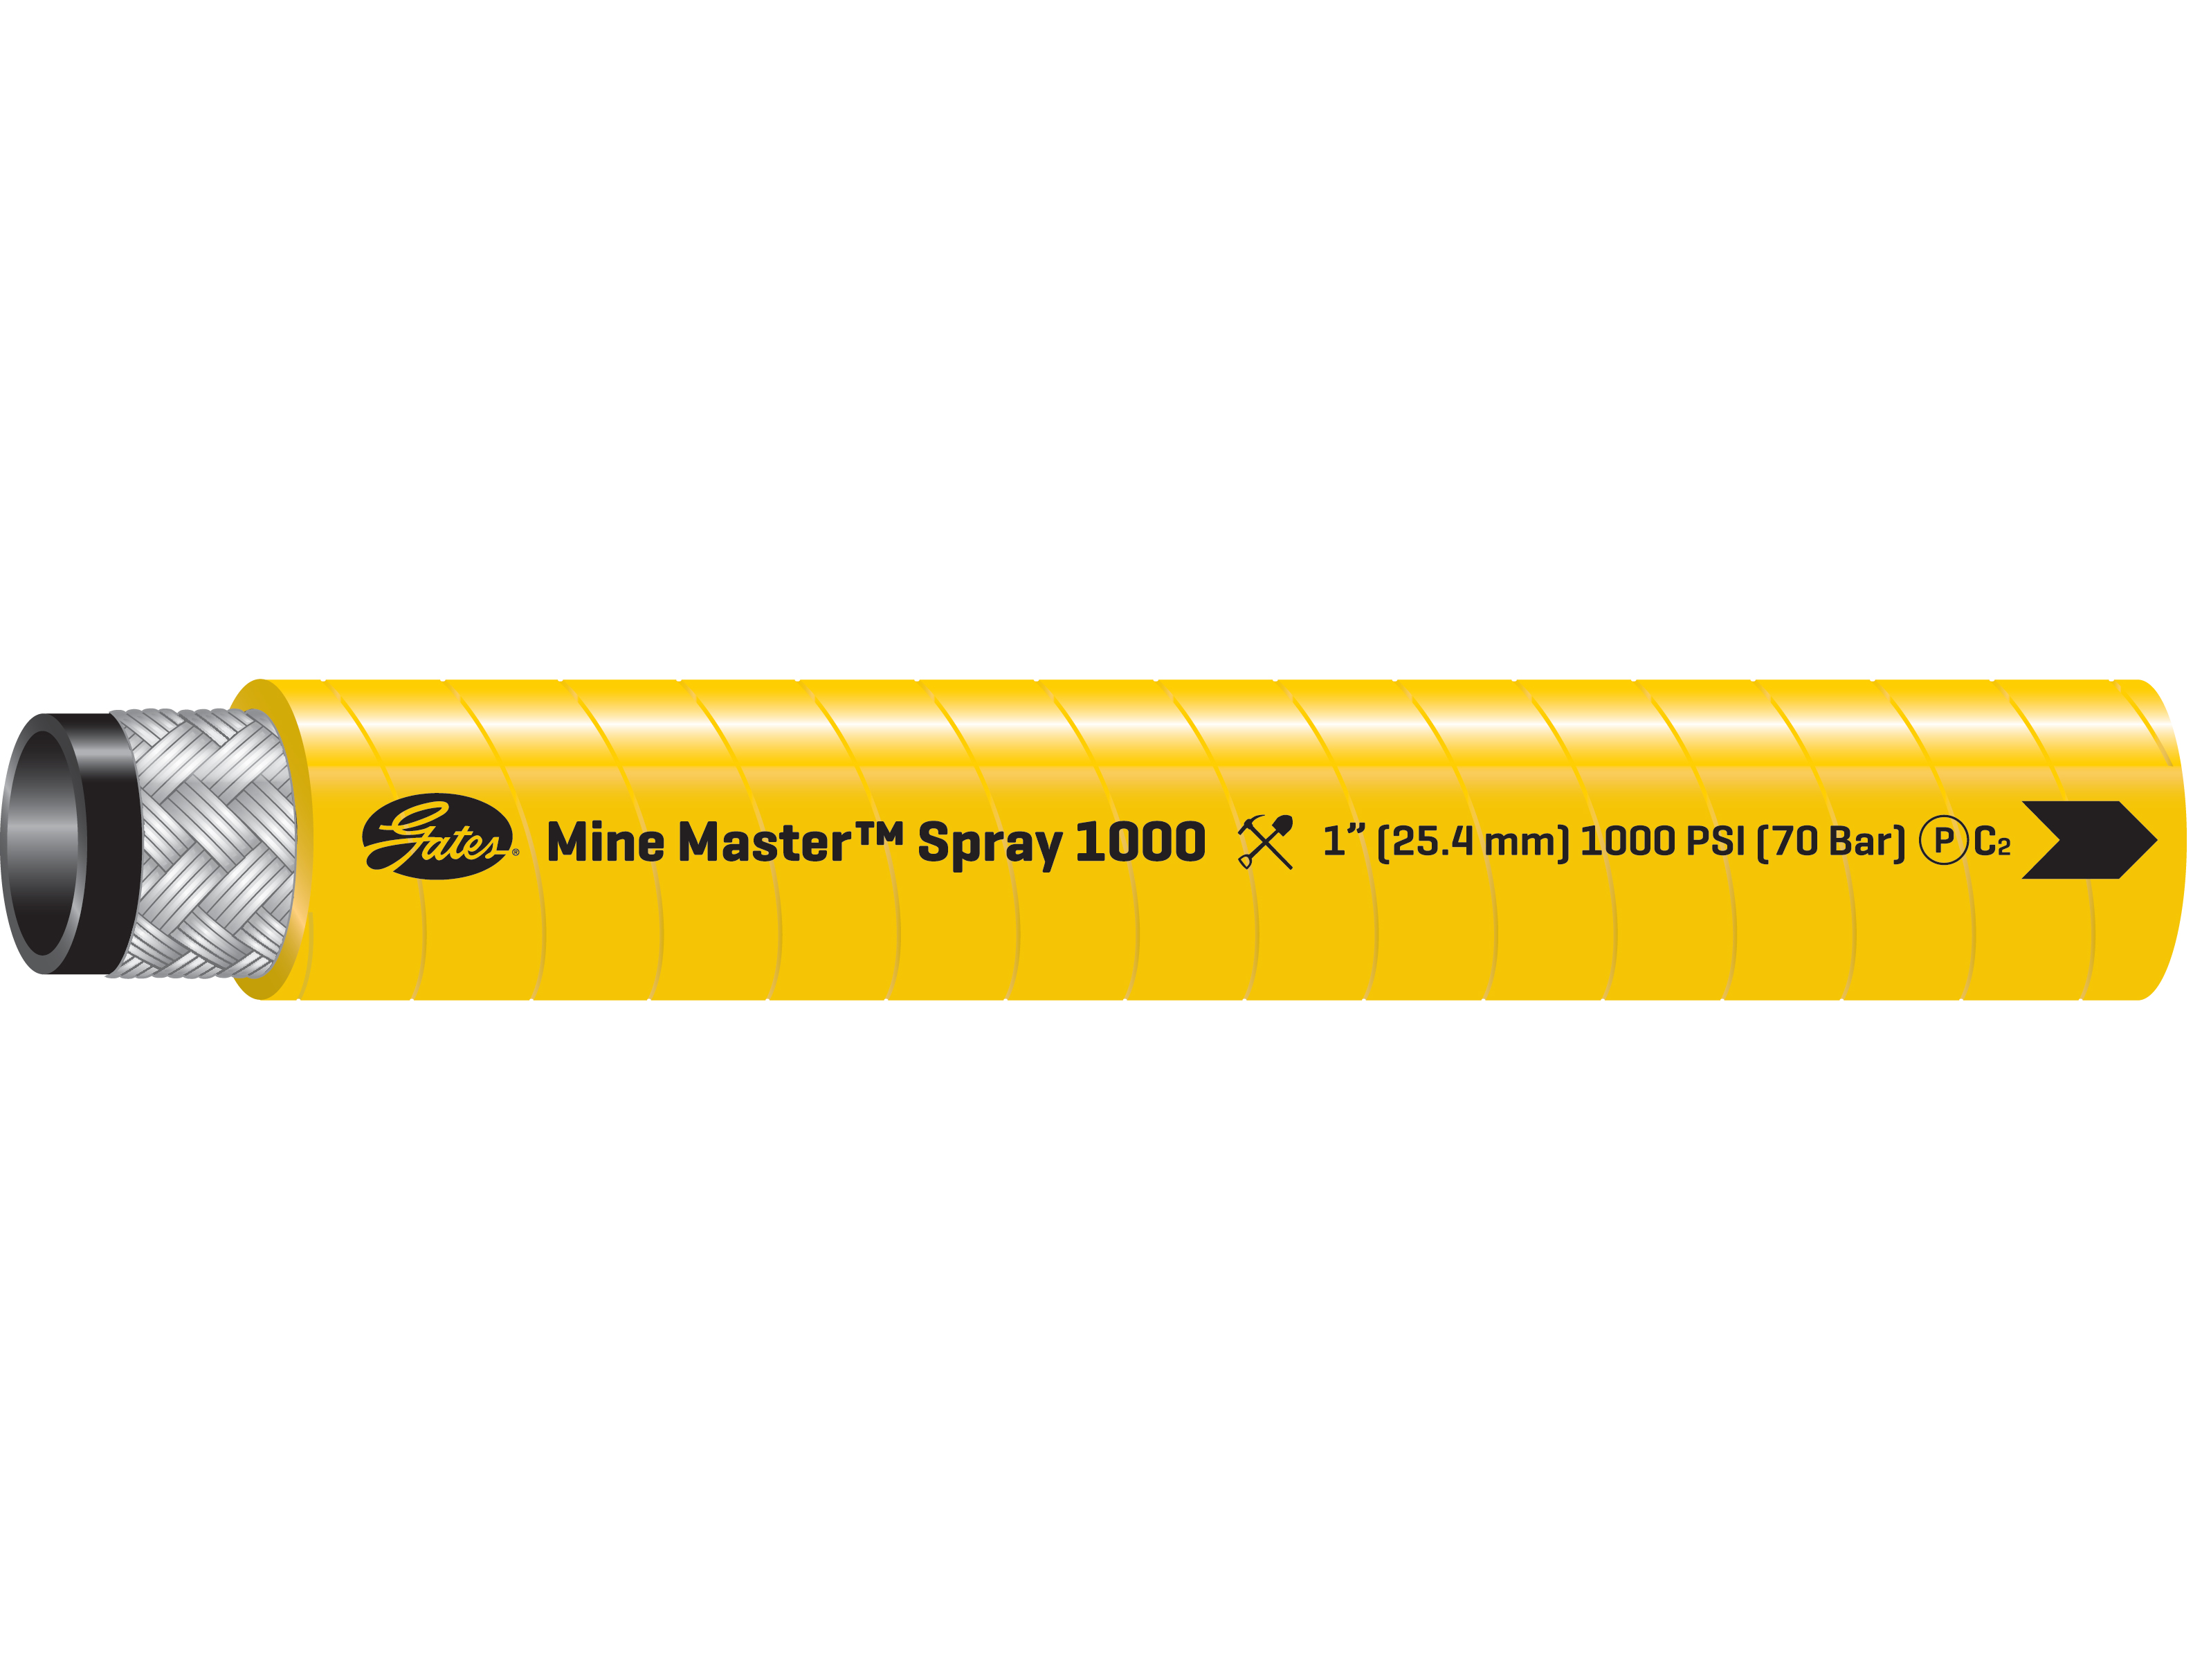 Mine Master Spray 1000 Hose For Underground Mining Applications